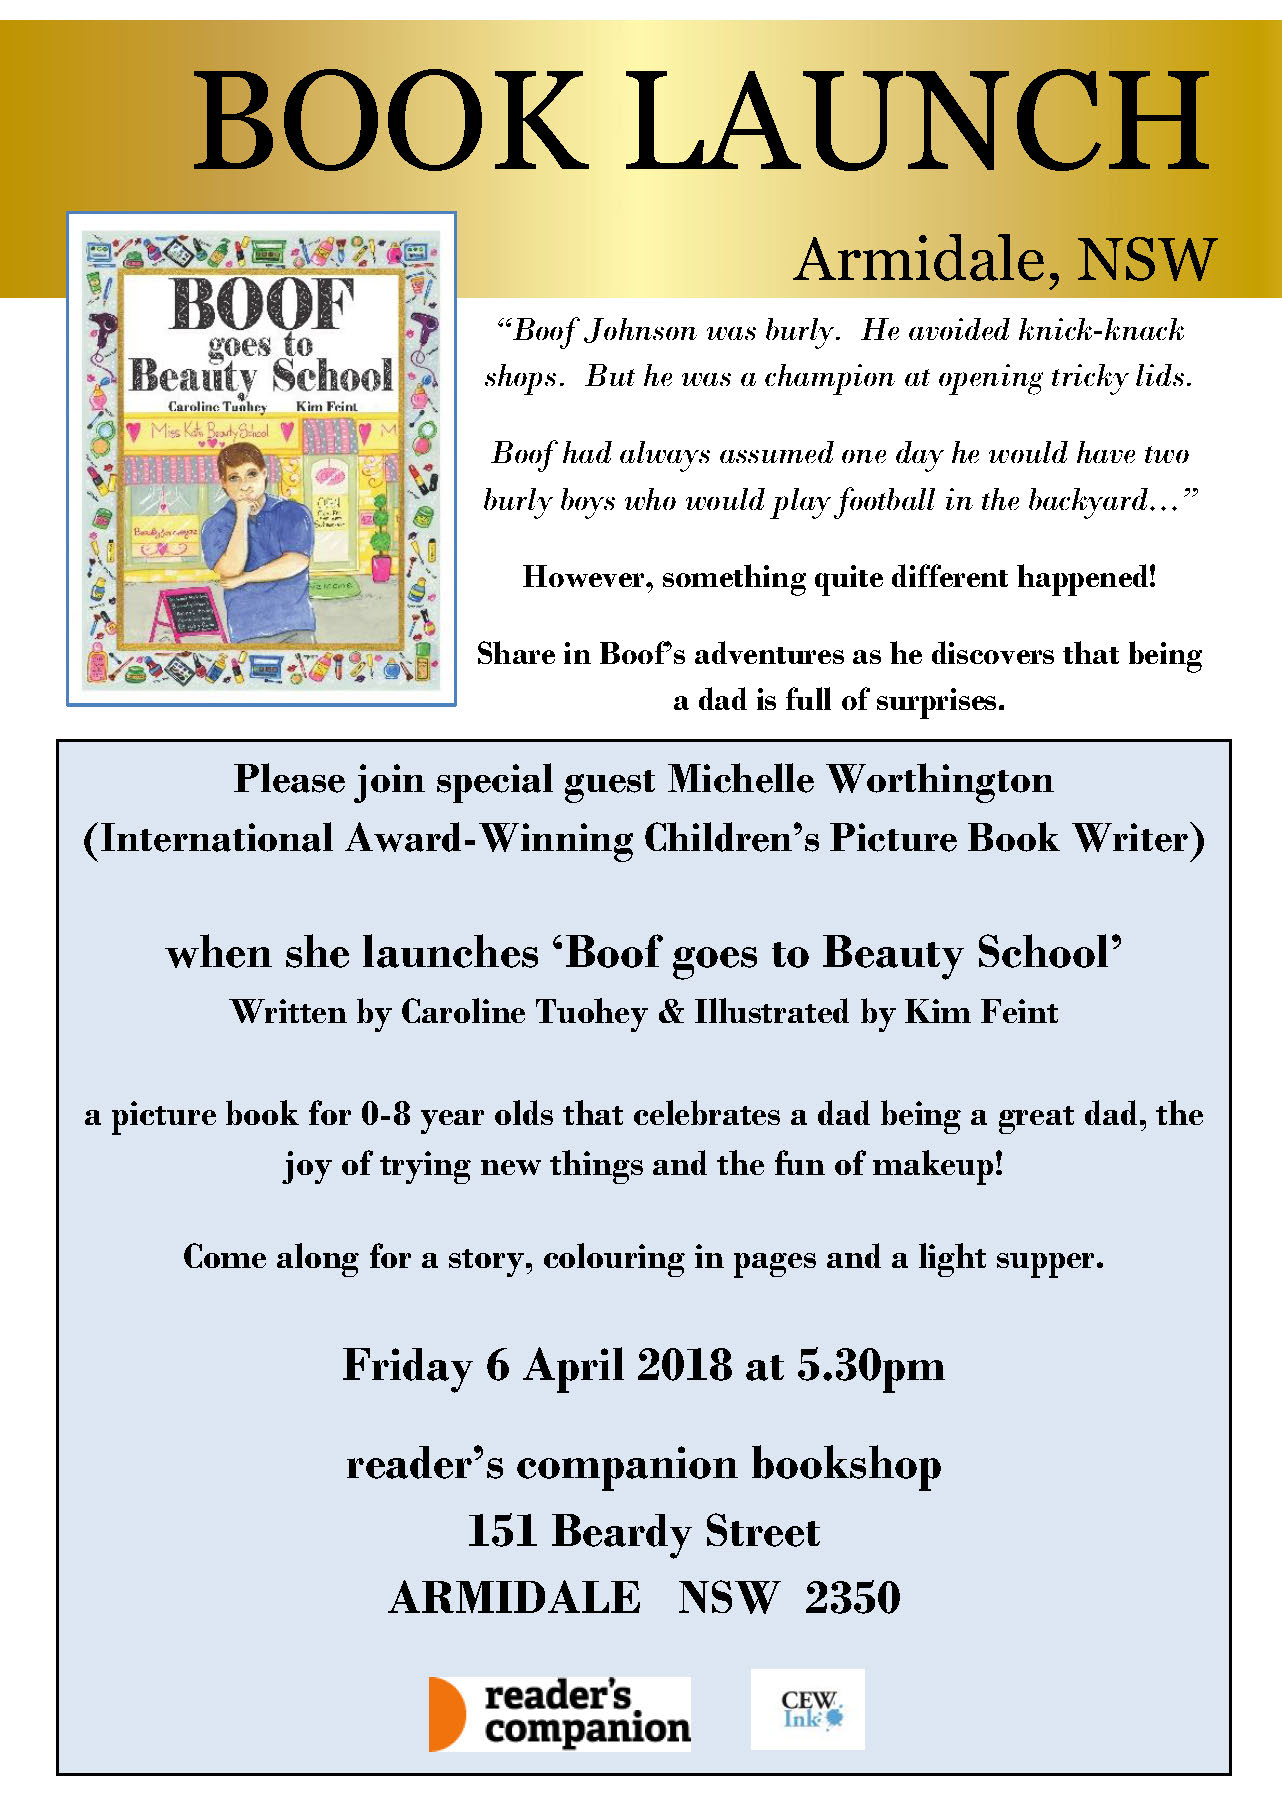 Armidale Book Launch Invitation.jpg